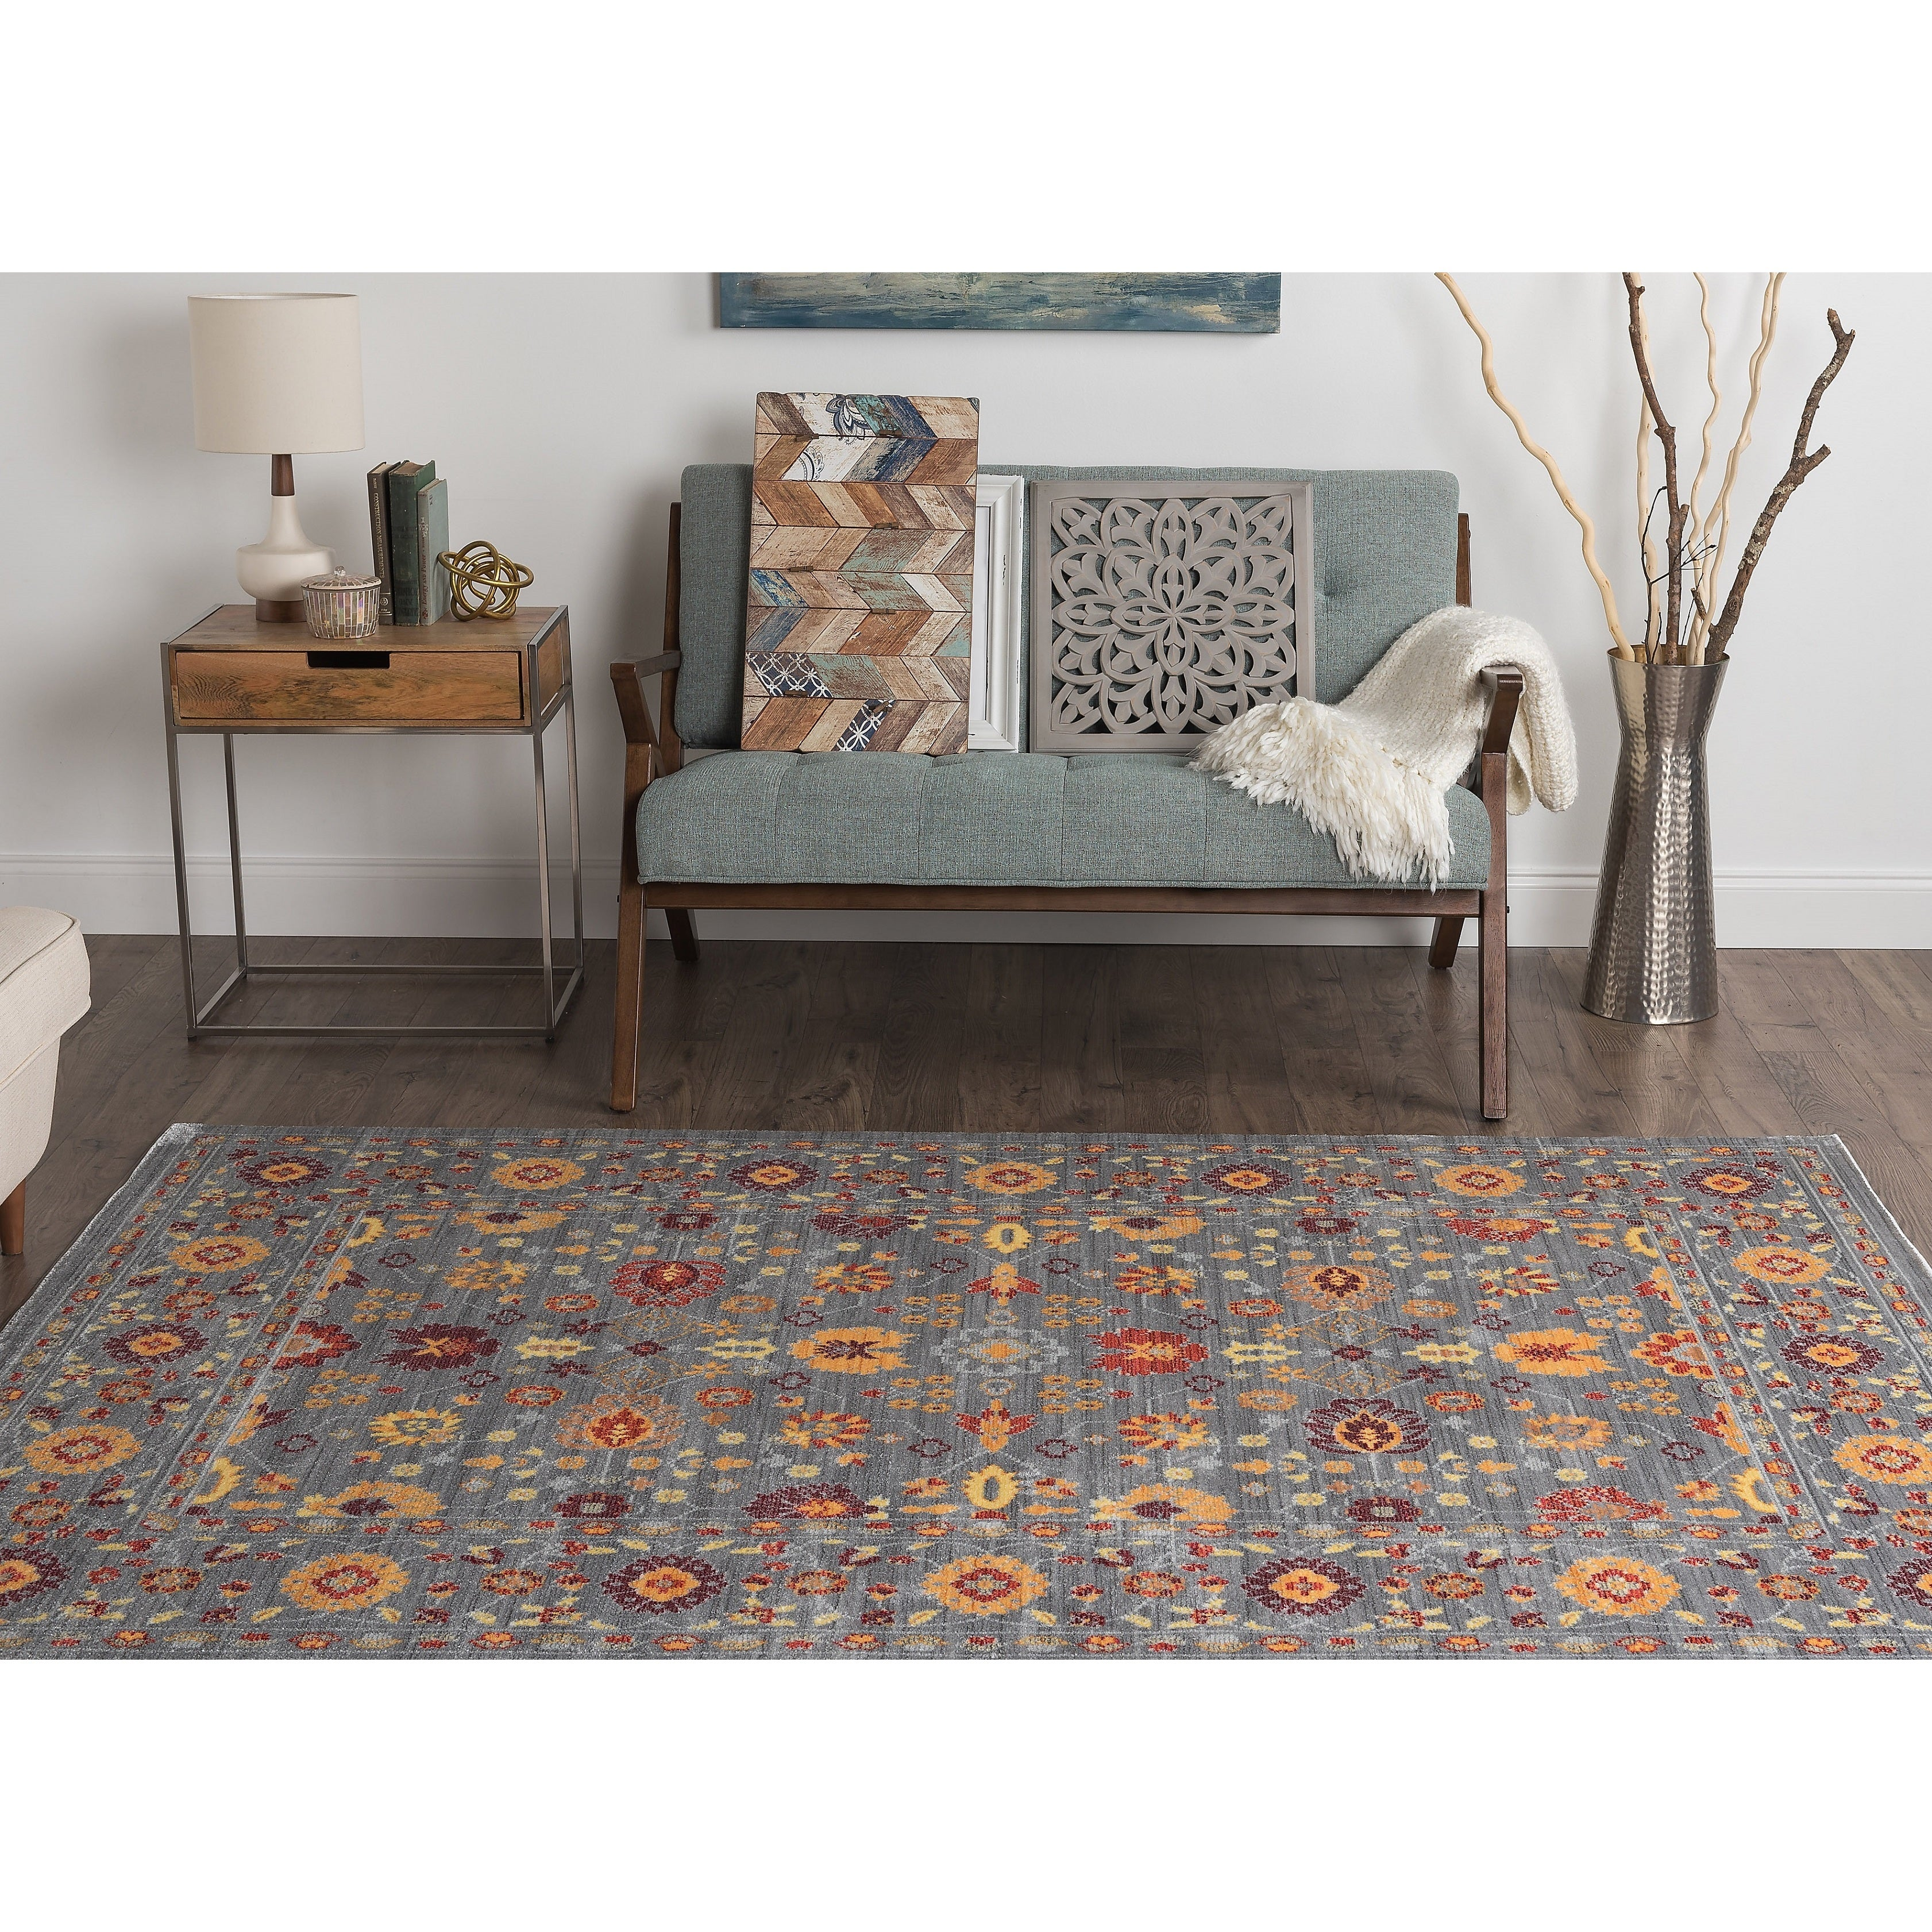 Alise Rugs Heritance Spice Traditional Area Rug (3'11 x 6...